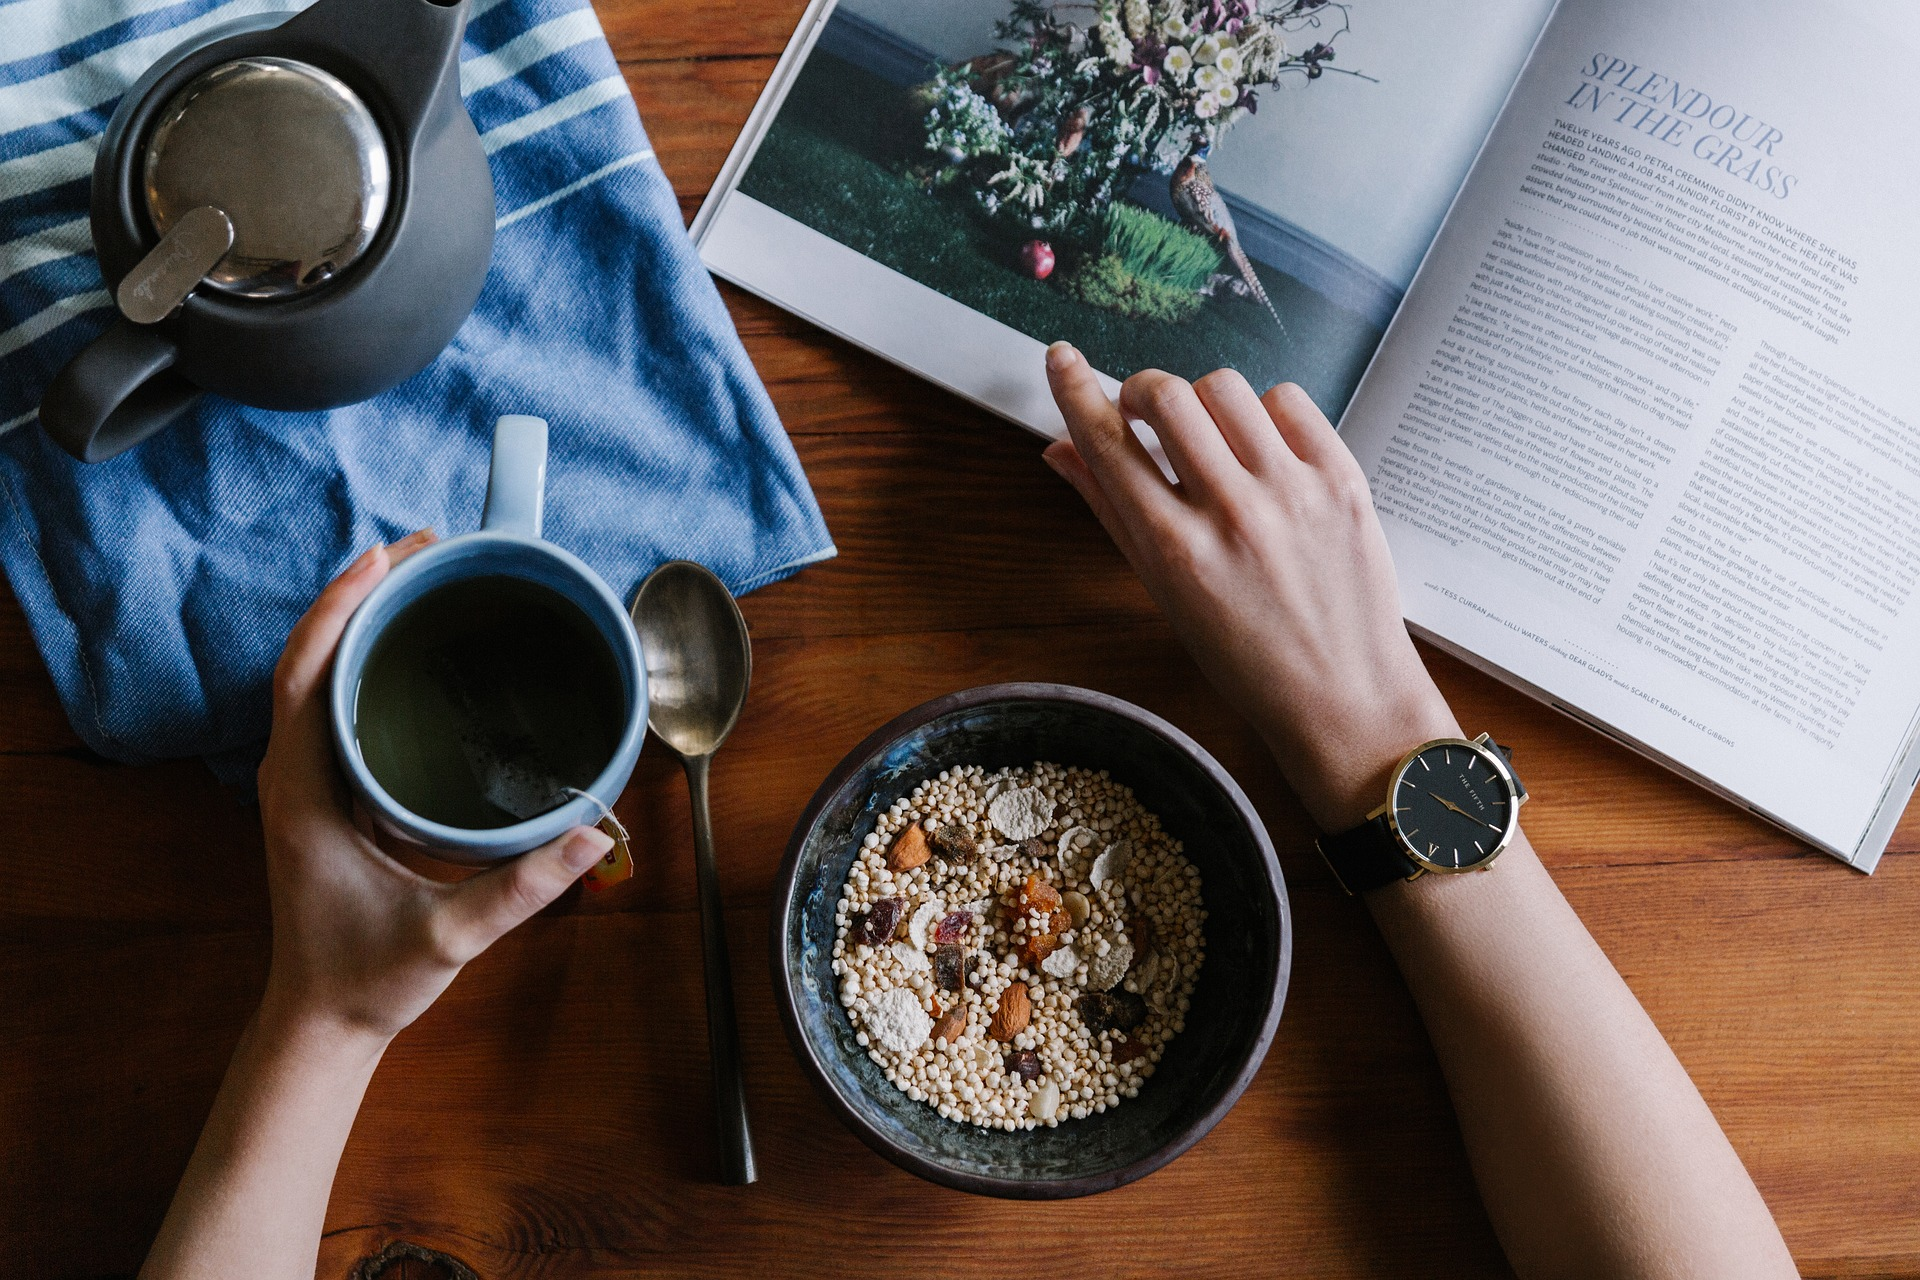 Waking up well before you start work means you can set an easy pace for the beginning of the day. Sit around, prepare and eat breakfast slowly, just as Sadia Saeed advocates.